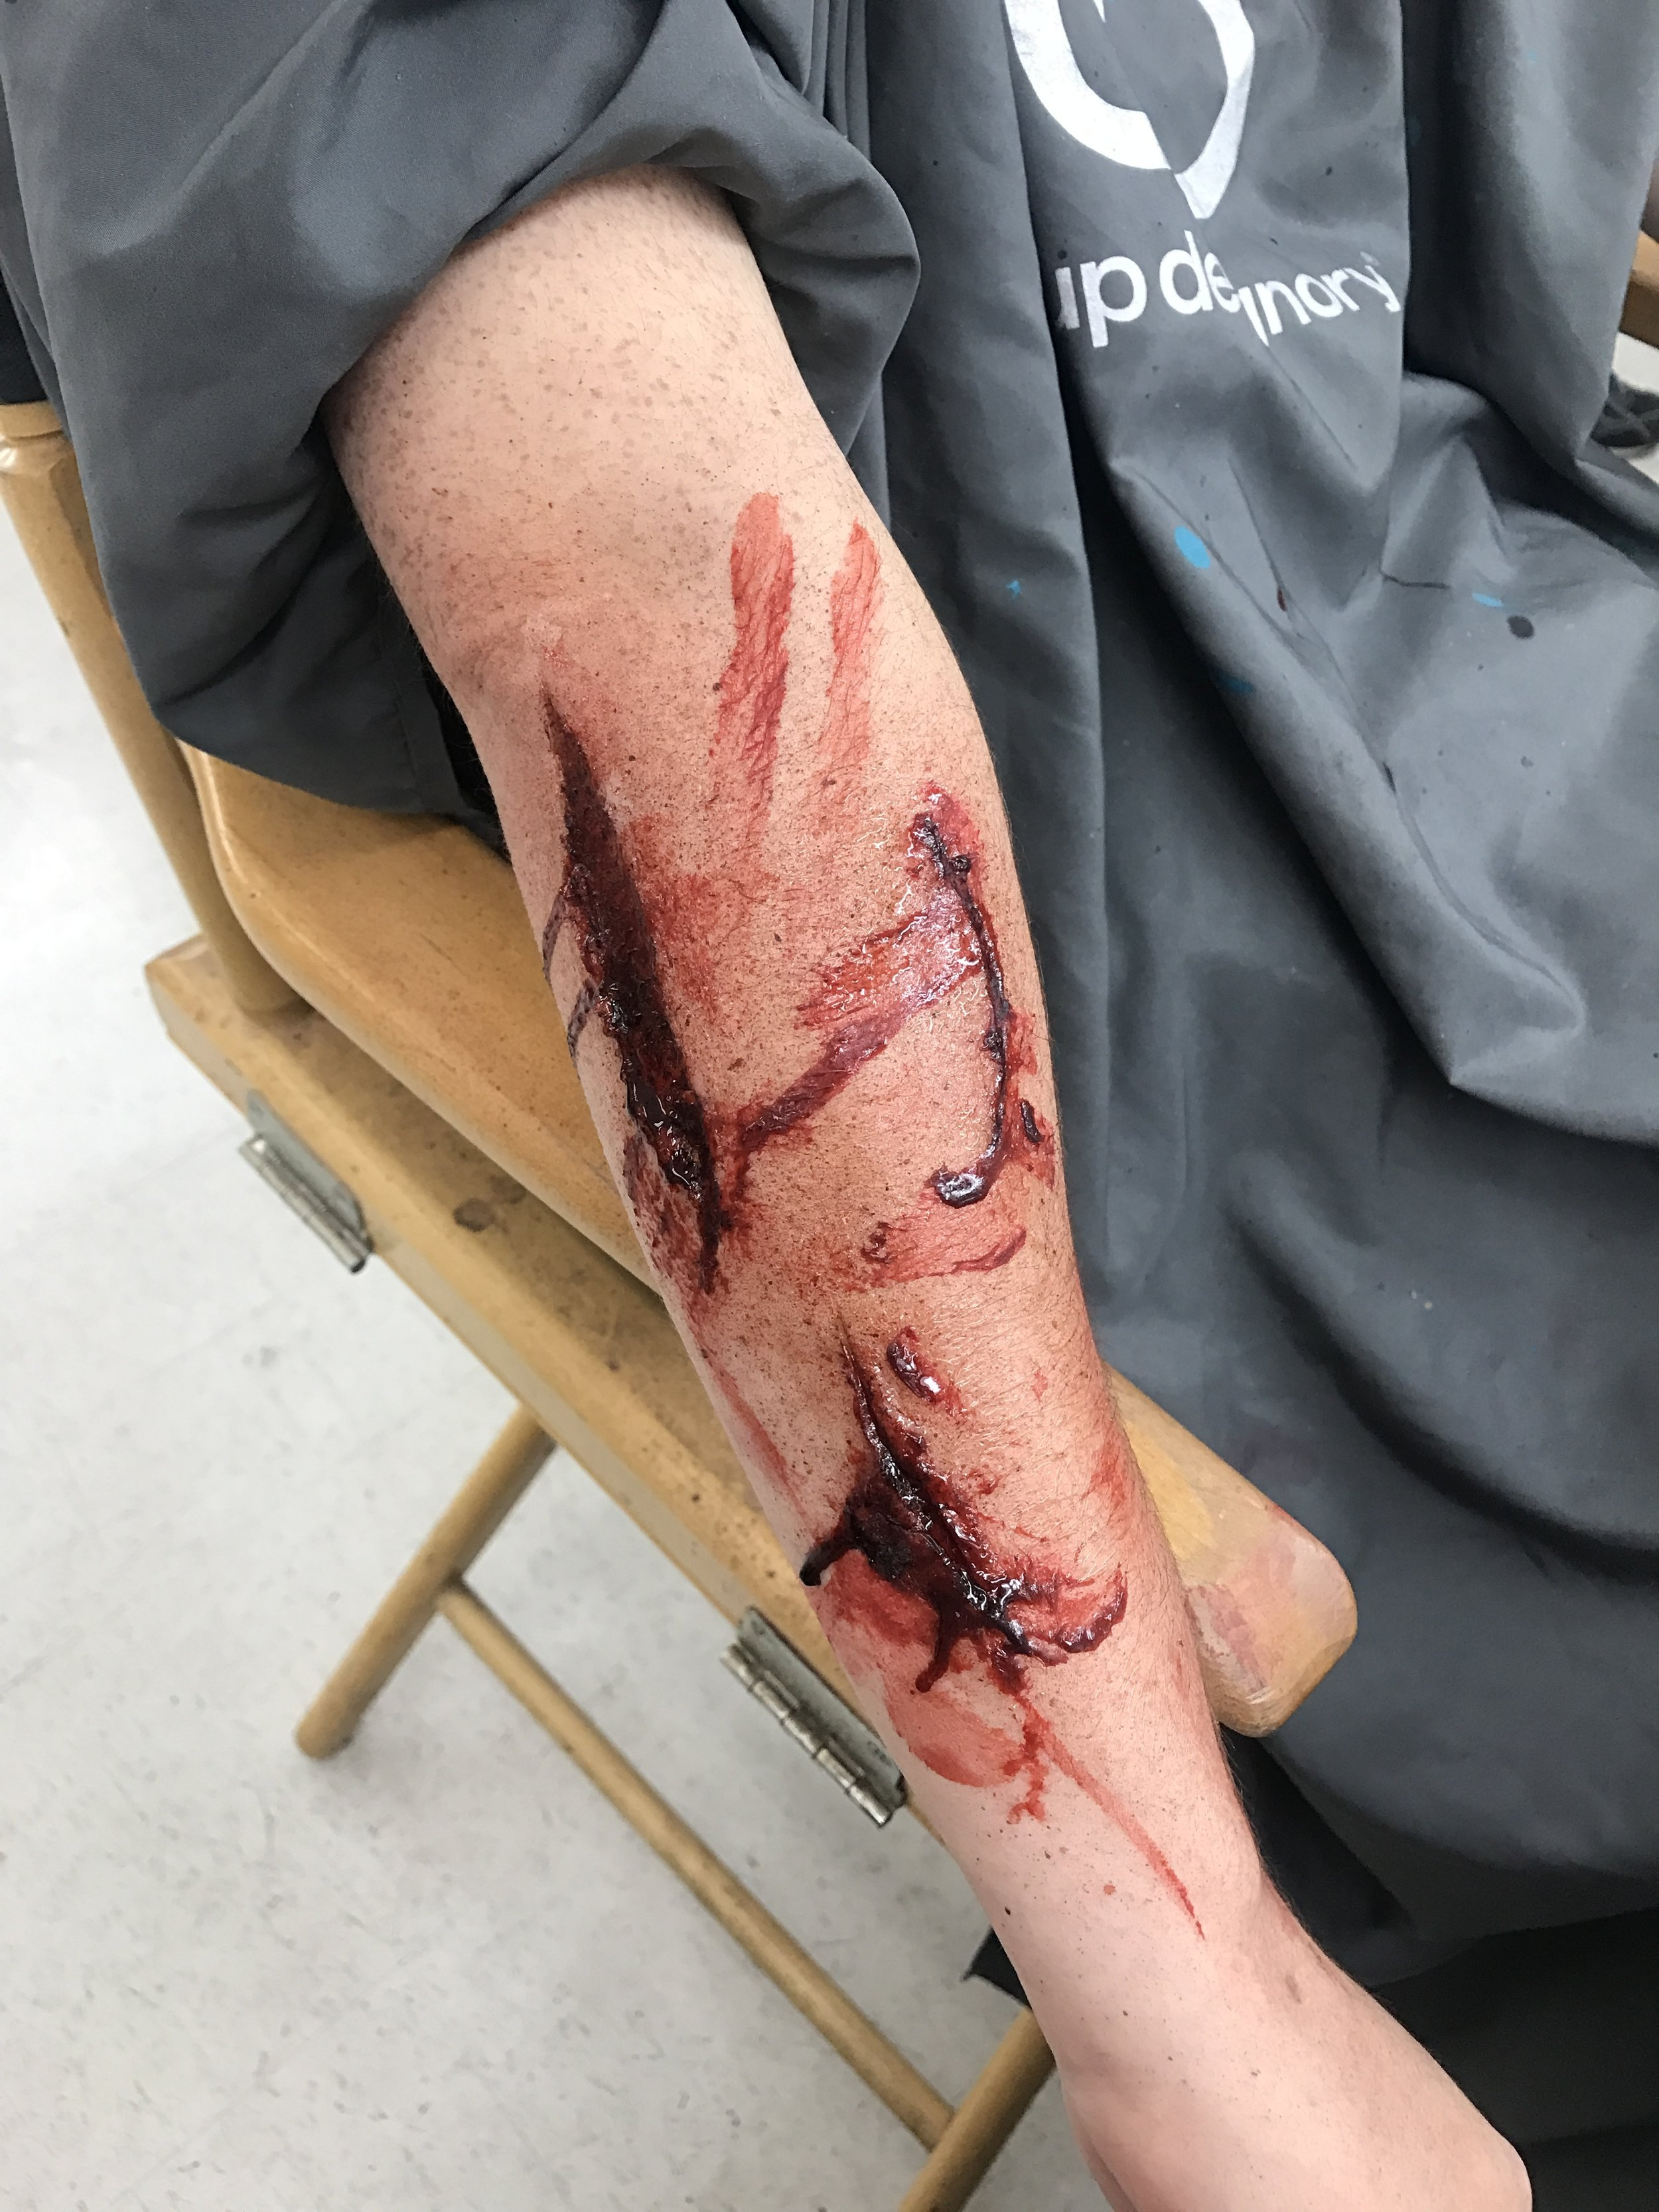 LACERATIONS USING 3RD DEGREE